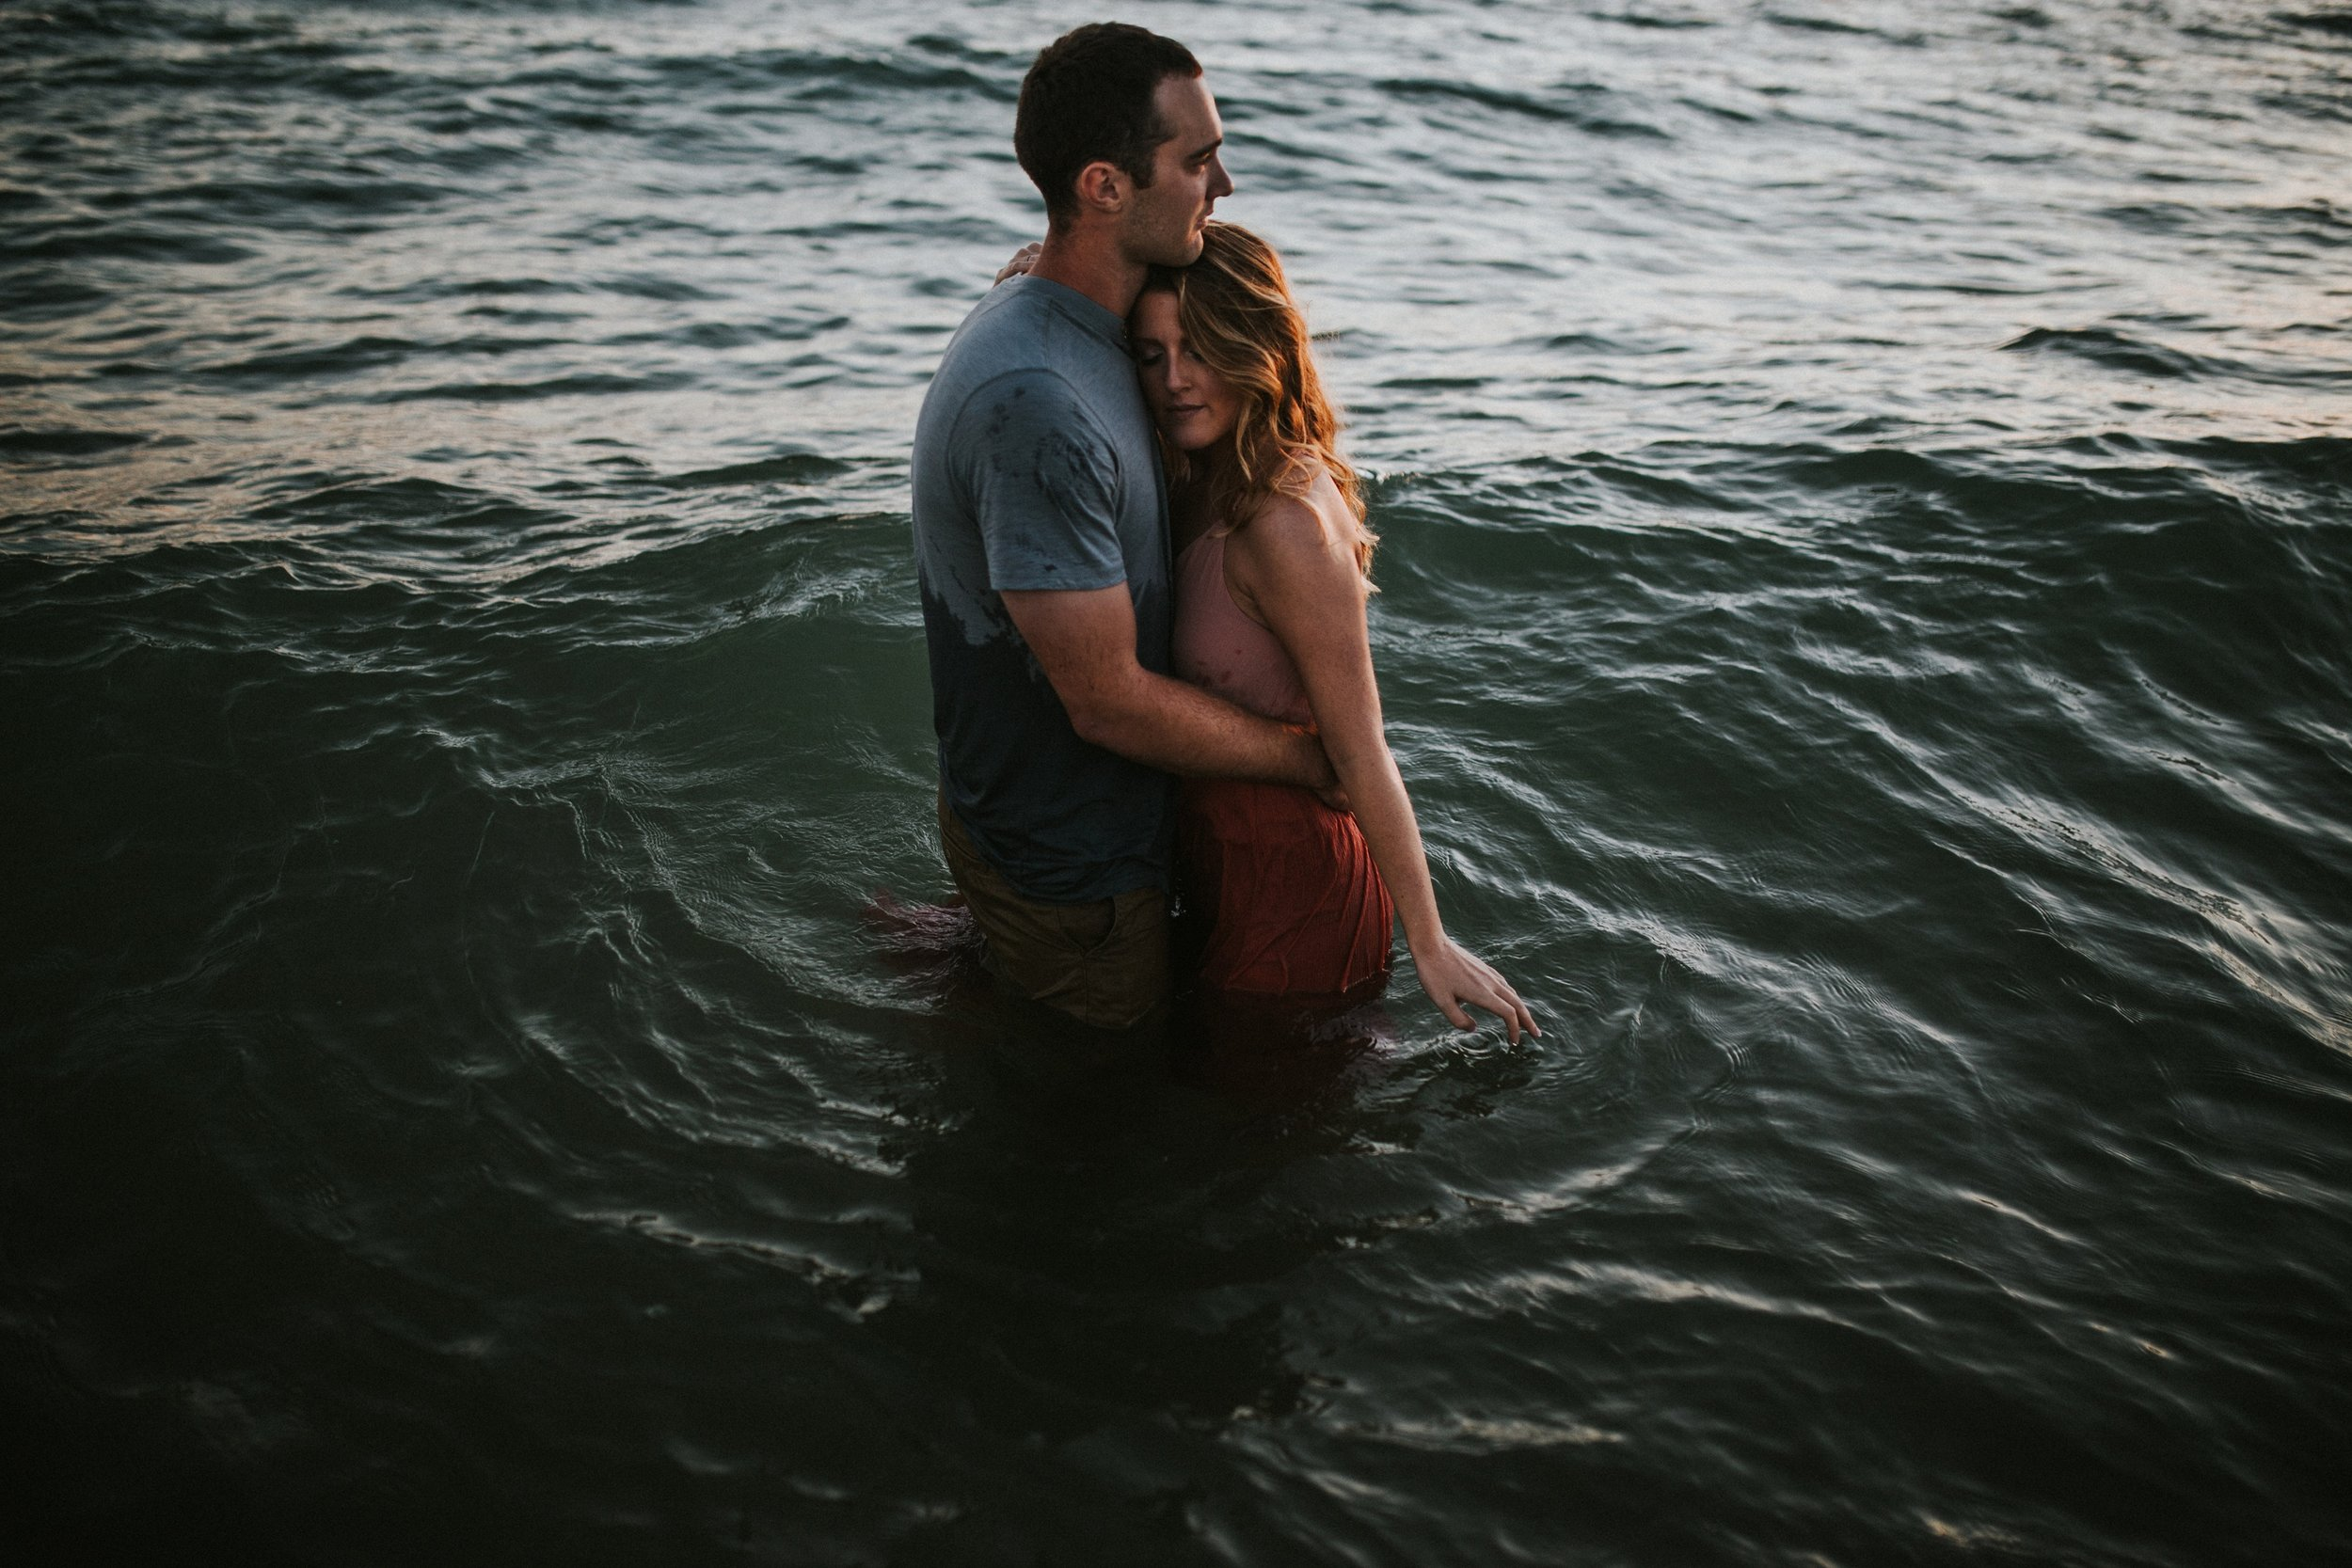 west-michigan-couples-photographer-ludington-michigan-engagement-session-wth-emily-and-taylor-2987.jpg